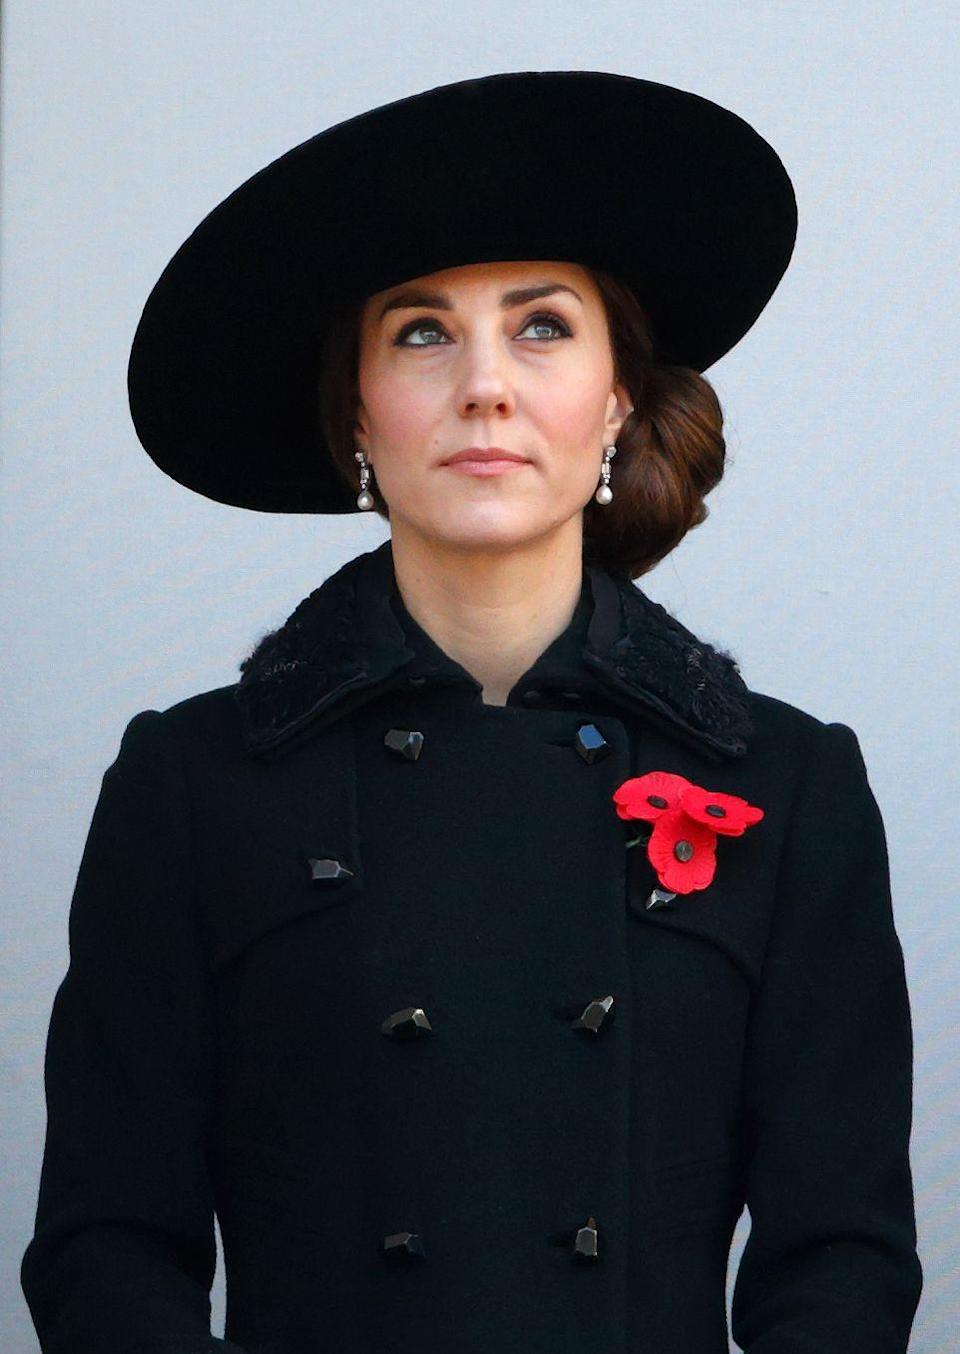 """<p>A classic black look will never go out of style, but the royals reserve it for evenings and funerals. The Queen made a rule that <a href=""""https://www.goodhousekeeping.com/life/a45377/the-royal-family-spare-black-outfit/"""" rel=""""nofollow noopener"""" target=""""_blank"""" data-ylk=""""slk:all members of the family must bring a black outfit"""" class=""""link rapid-noclick-resp"""">all members of the family must bring a black outfit</a> with them when traveling in case there is a sudden death while they're away.</p><p><strong>RELATED:</strong> <a href=""""https://www.goodhousekeeping.com/beauty/fashion/g24472567/royal-outfits-hidden-meanings/"""" rel=""""nofollow noopener"""" target=""""_blank"""" data-ylk=""""slk:The Secret Messages Behind Royal Clothing"""" class=""""link rapid-noclick-resp"""">The Secret Messages Behind Royal Clothing </a></p>"""